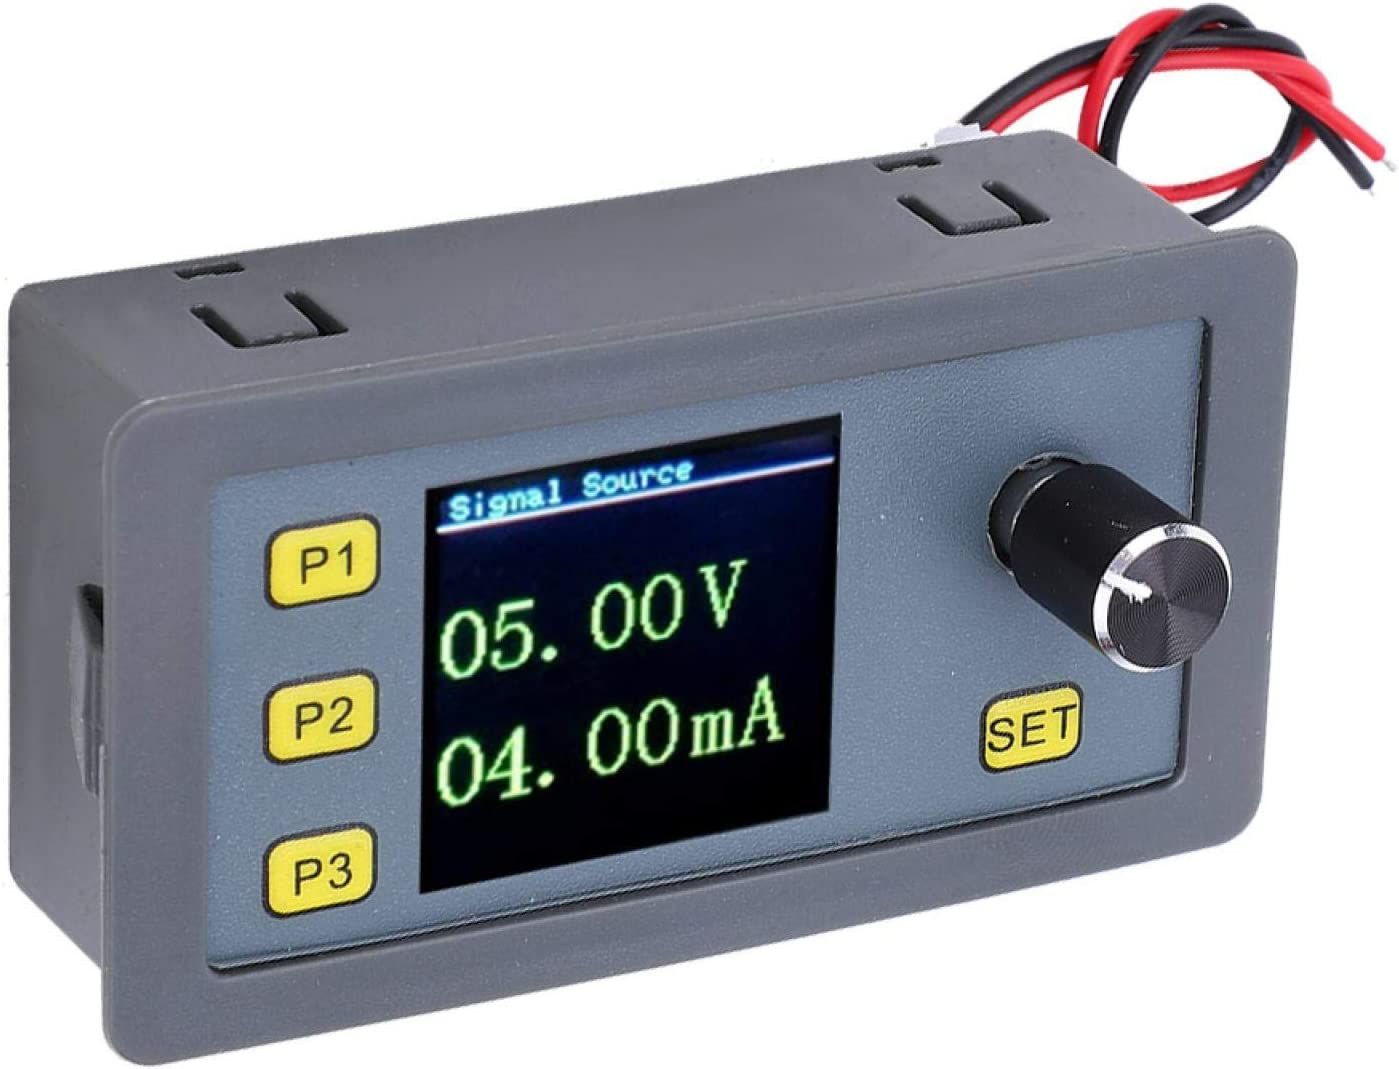 Multifunctional Reliable Pulse Mode For PWM Mode Sine Wave Mode Signal Source Mode Adjustable Concise Clear Sine Wave Module Adjustable PWM Pulse Module